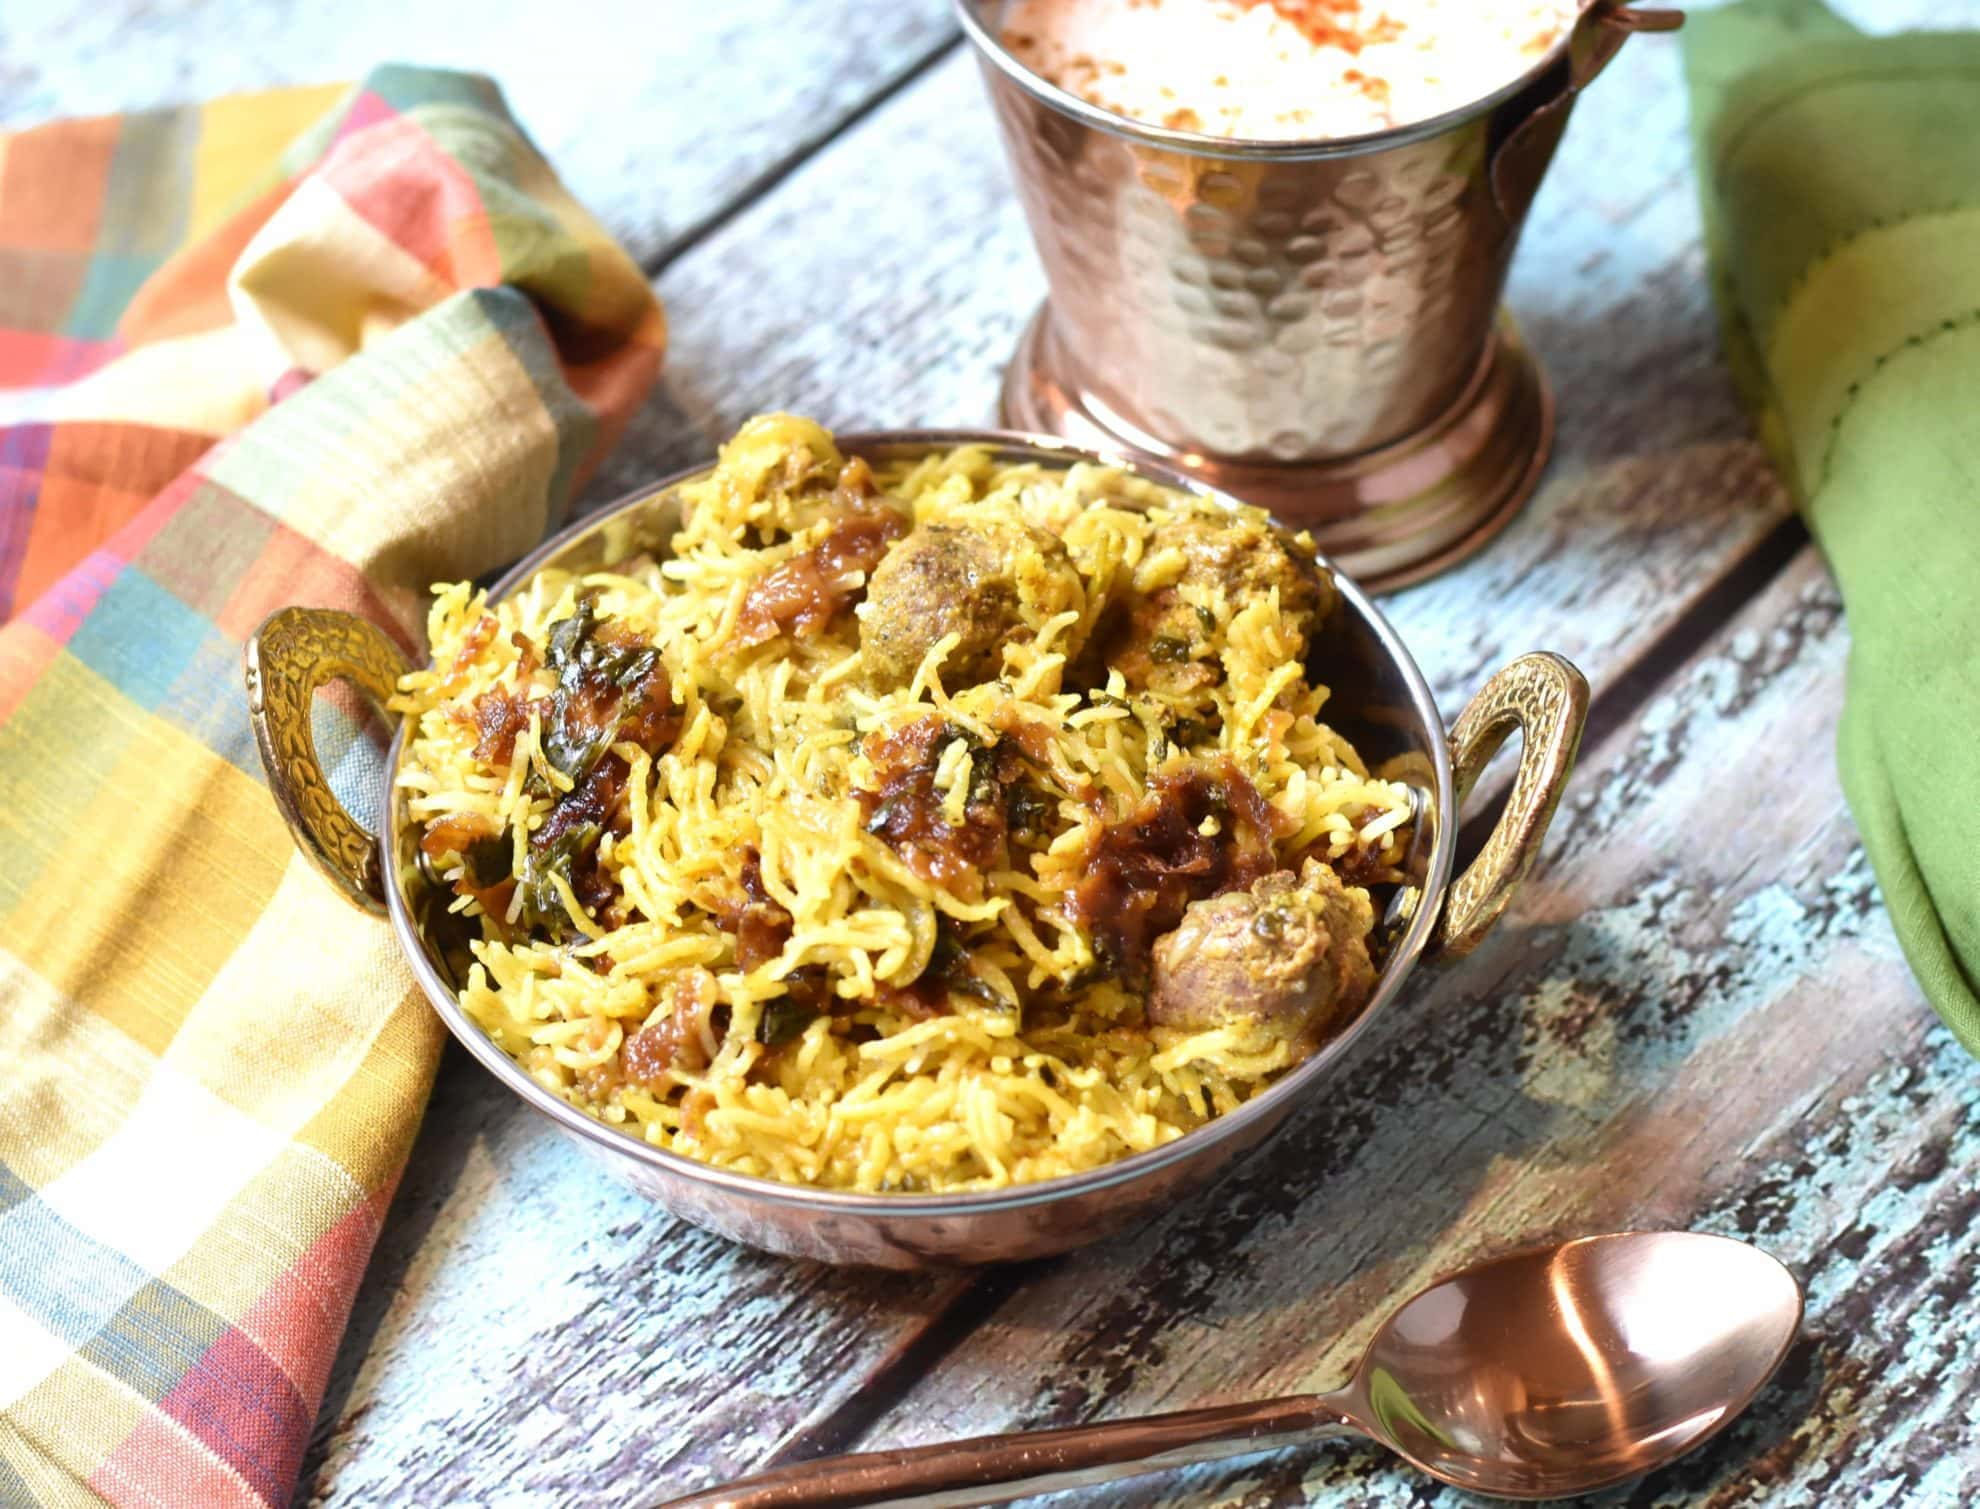 Instant pot Lamb dum Biryani / pressure cooker Lamb Biryani by Spice Cravings. Lamb Dum Biryani is a meat and rice dish where meat marinated in bold Indian spices is cooked with fragrant Basmati rice and aromatics like onions & herbs. #food #foodie #foodblogger #delicious #recipe #instantpot #recipes #easyrecipe #cuisine #30minutemeal #instagood #foodphotography #tasty #indian #curry